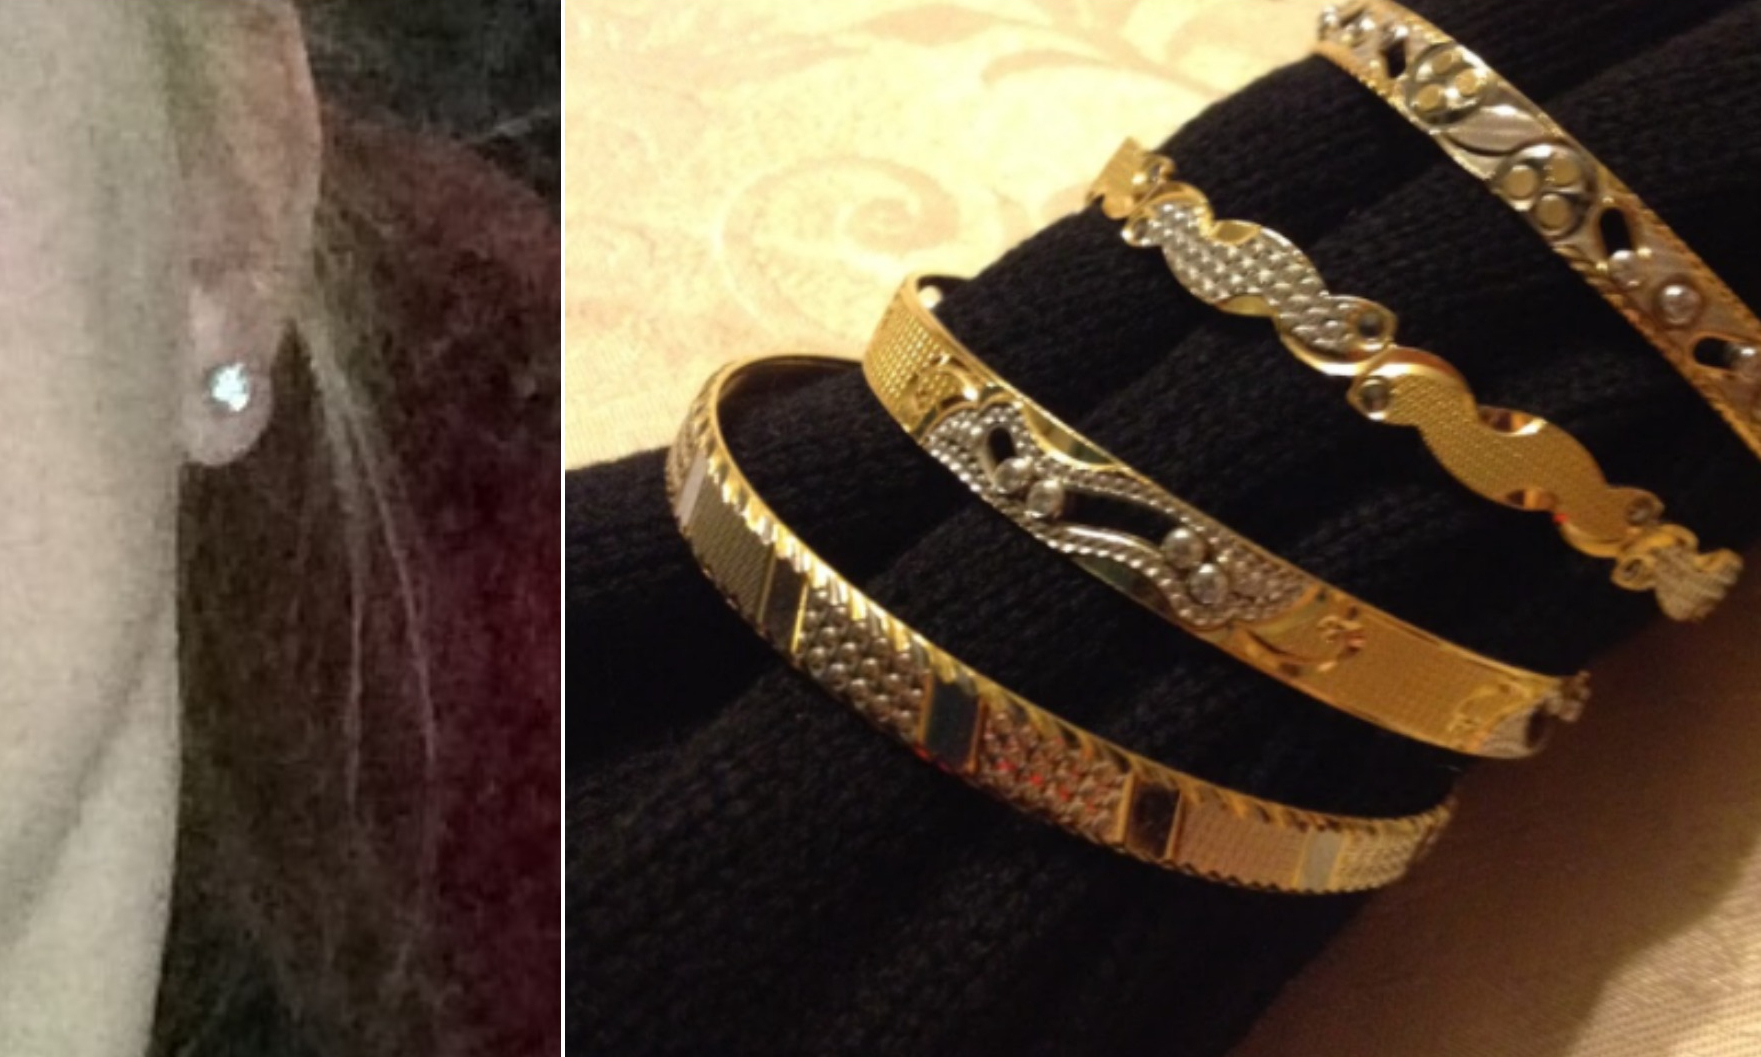 Stolen jewellery worth £15000 may surface in Wrexham